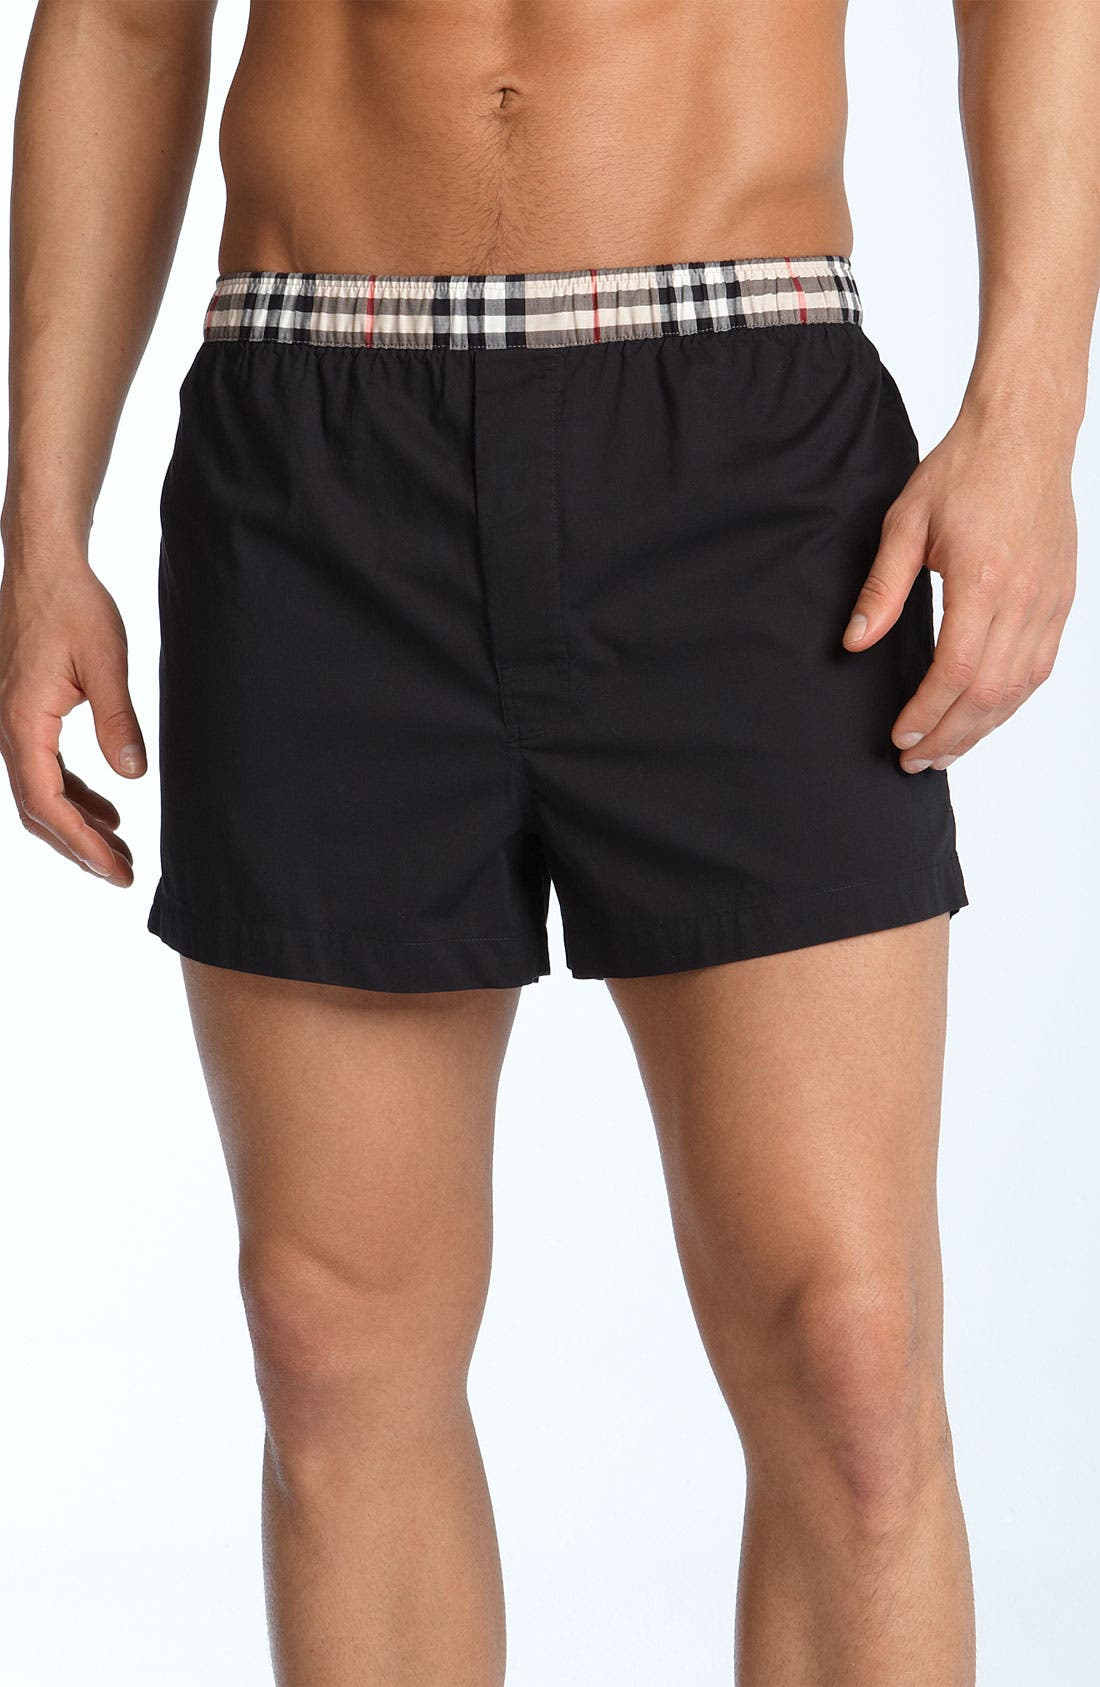 Alternate Image 1 Selected - Burberry Check Print Woven Boxer Shorts